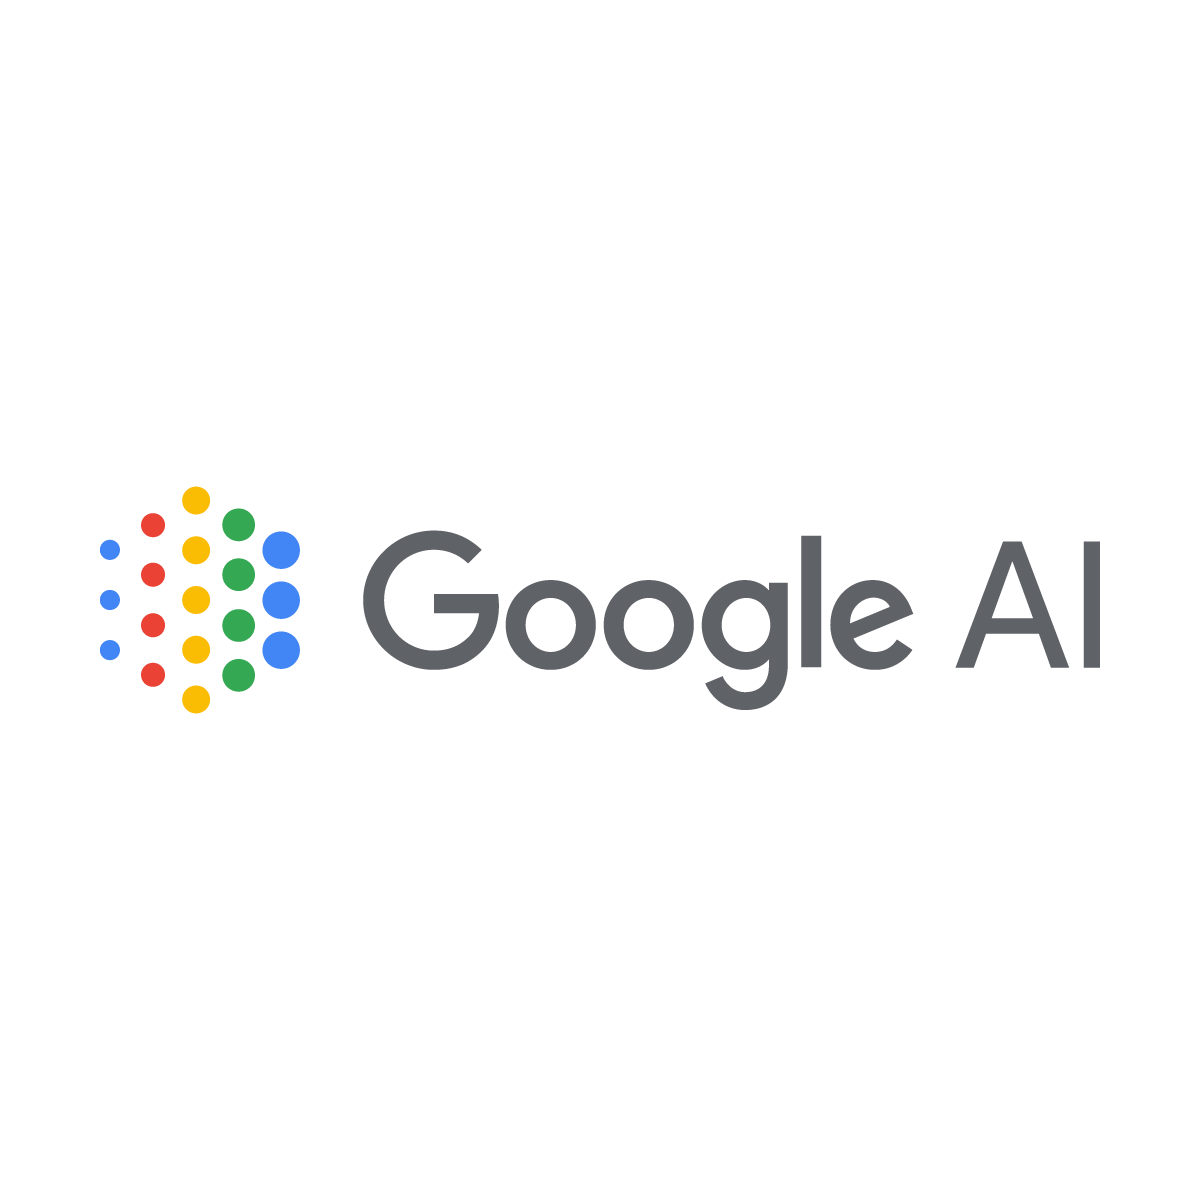 Google Duplex: An AI System for Accomplishing Real-World Tasks Over the Phone